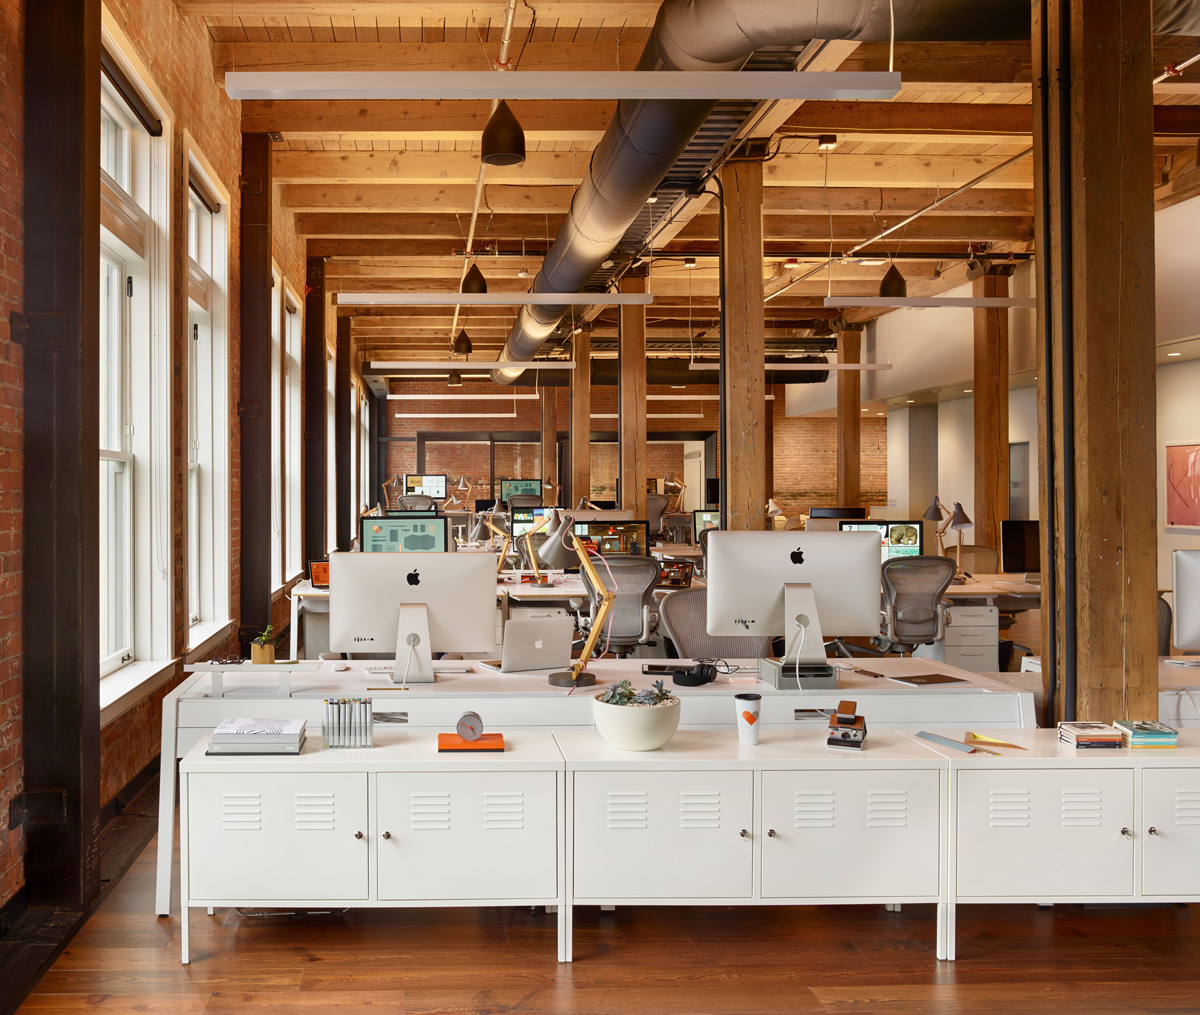 Fifty Three office desks, exposed beams and nautral wood